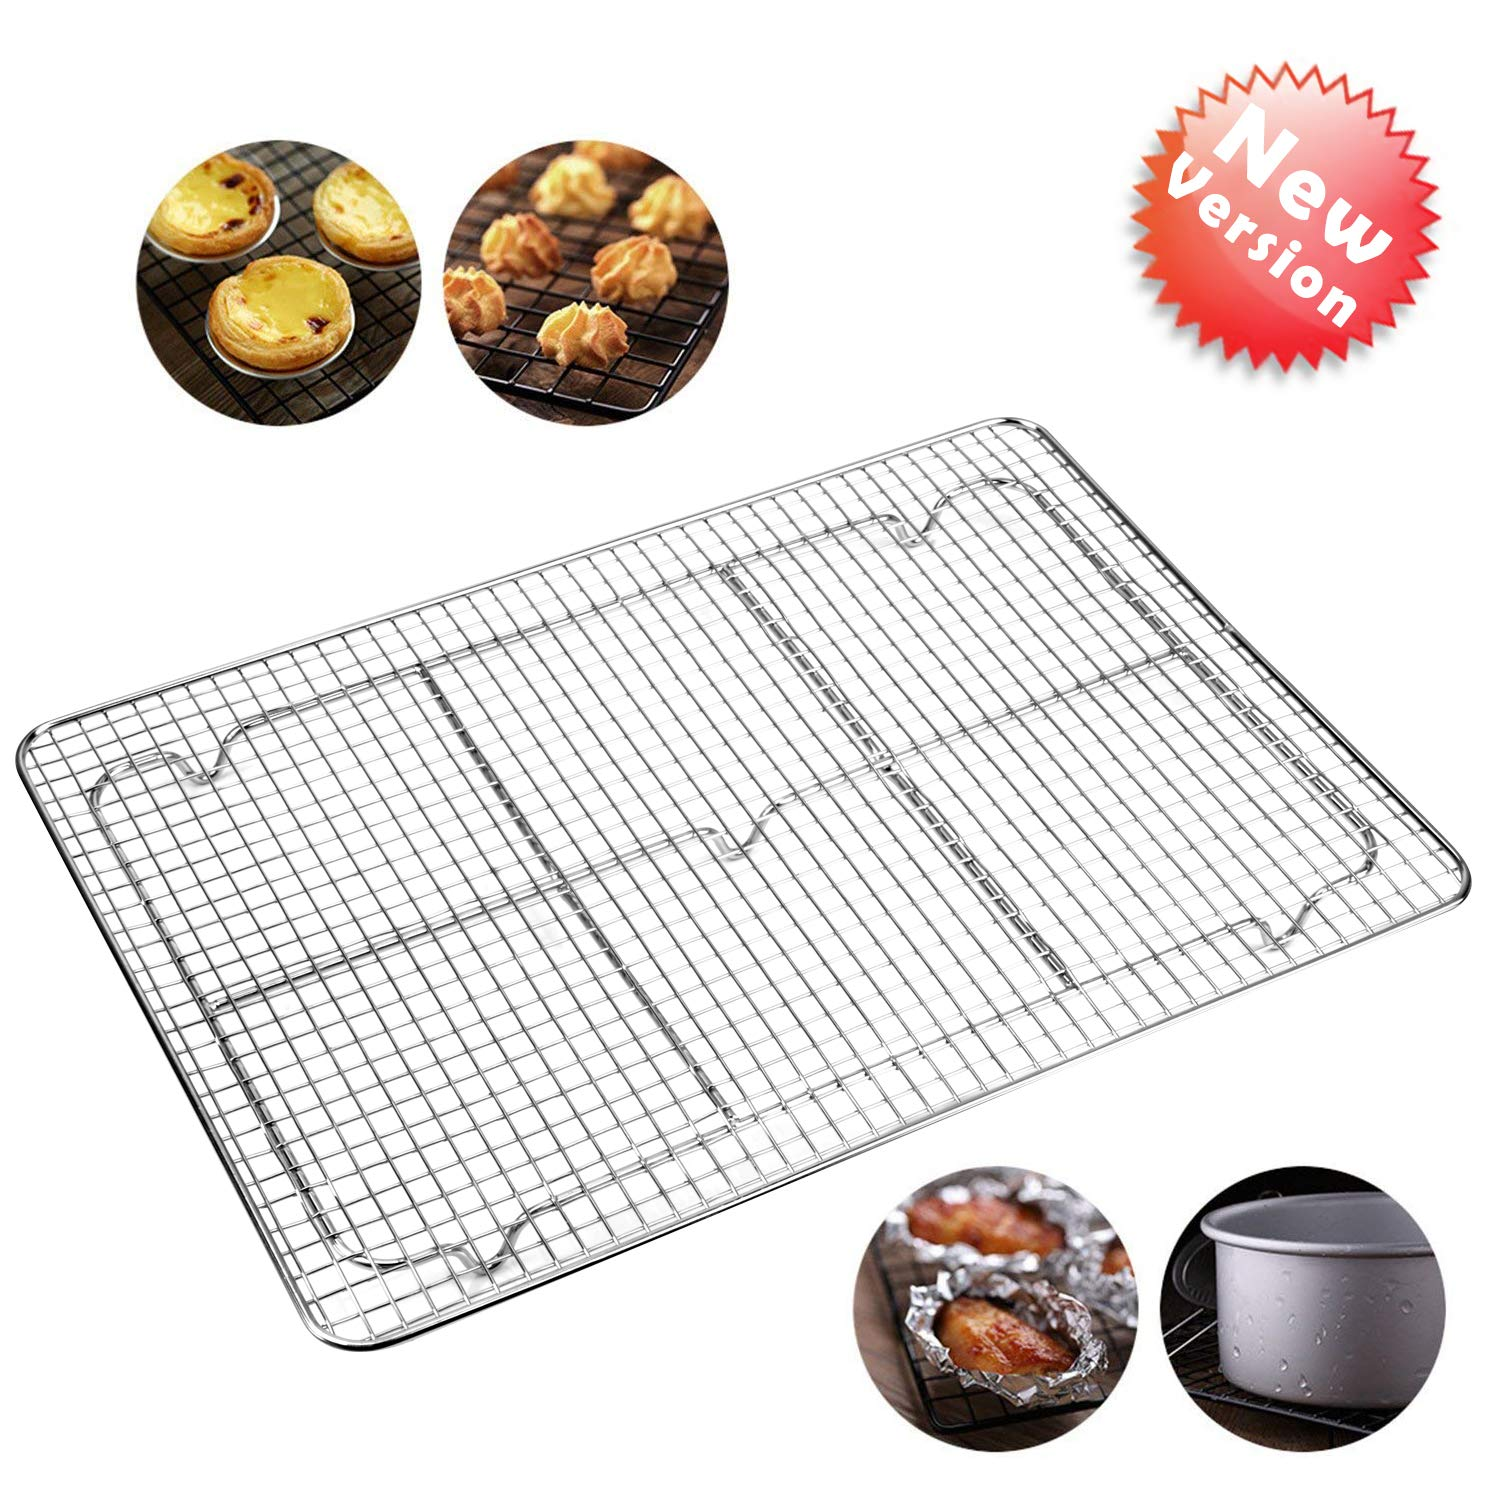 Cooling Racks For Baking,Bakeable Nonstick Cooling Rack,Stainless Steel Cooling Rack,Oven Safe for Cooking,Roasting,Grilling,12 x 17 Inches Fits Half Sheet Cookie Pan Grilling,12 x 17 Inches Fits Half Sheet Cookie Pan